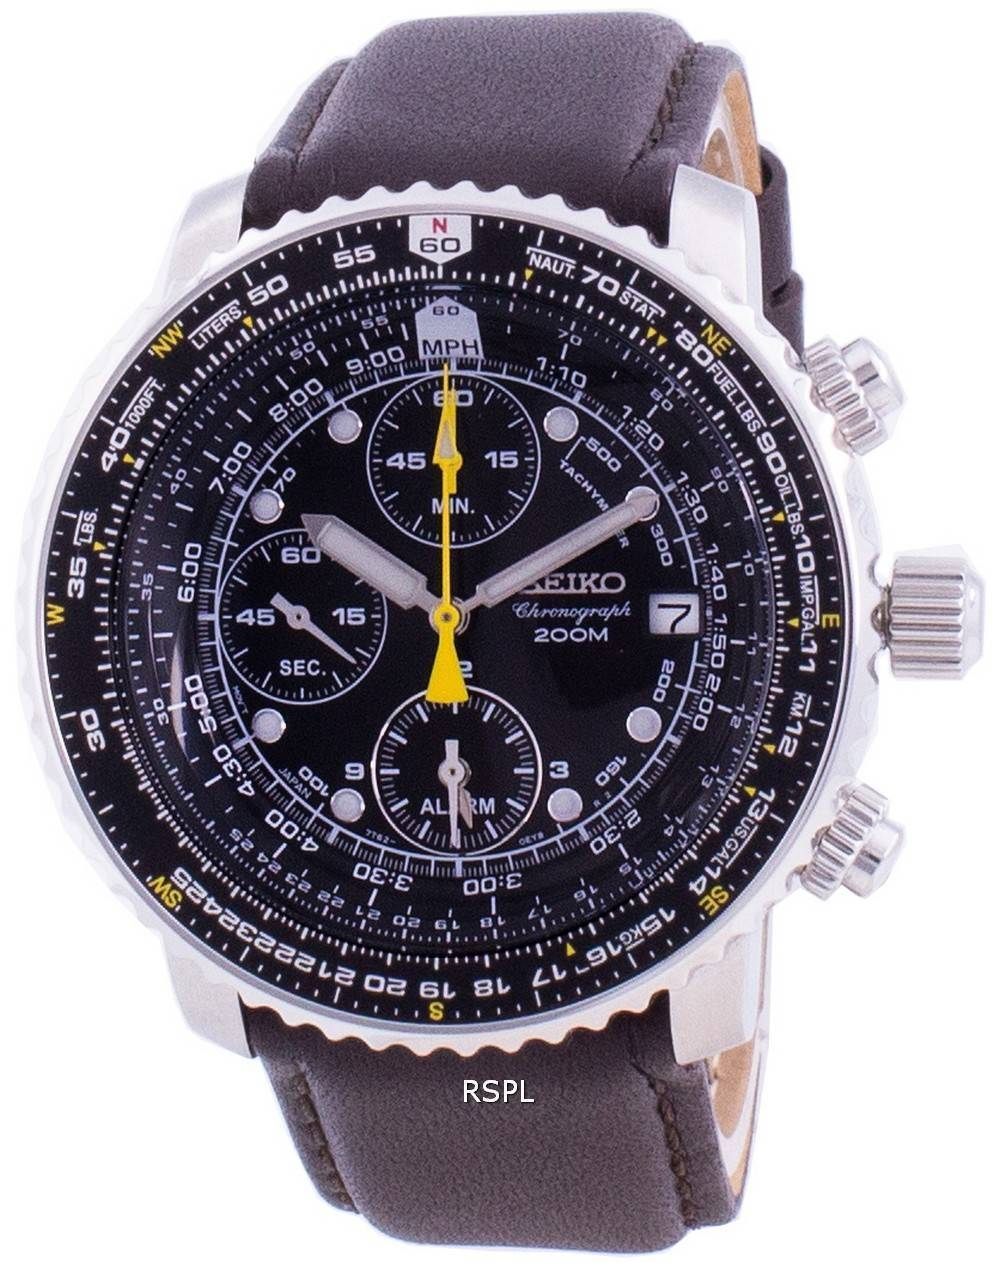 Seiko Pilot's Flight SNA411P1-VAR-LS11 Quartz Chronograph 200M Men's Watch